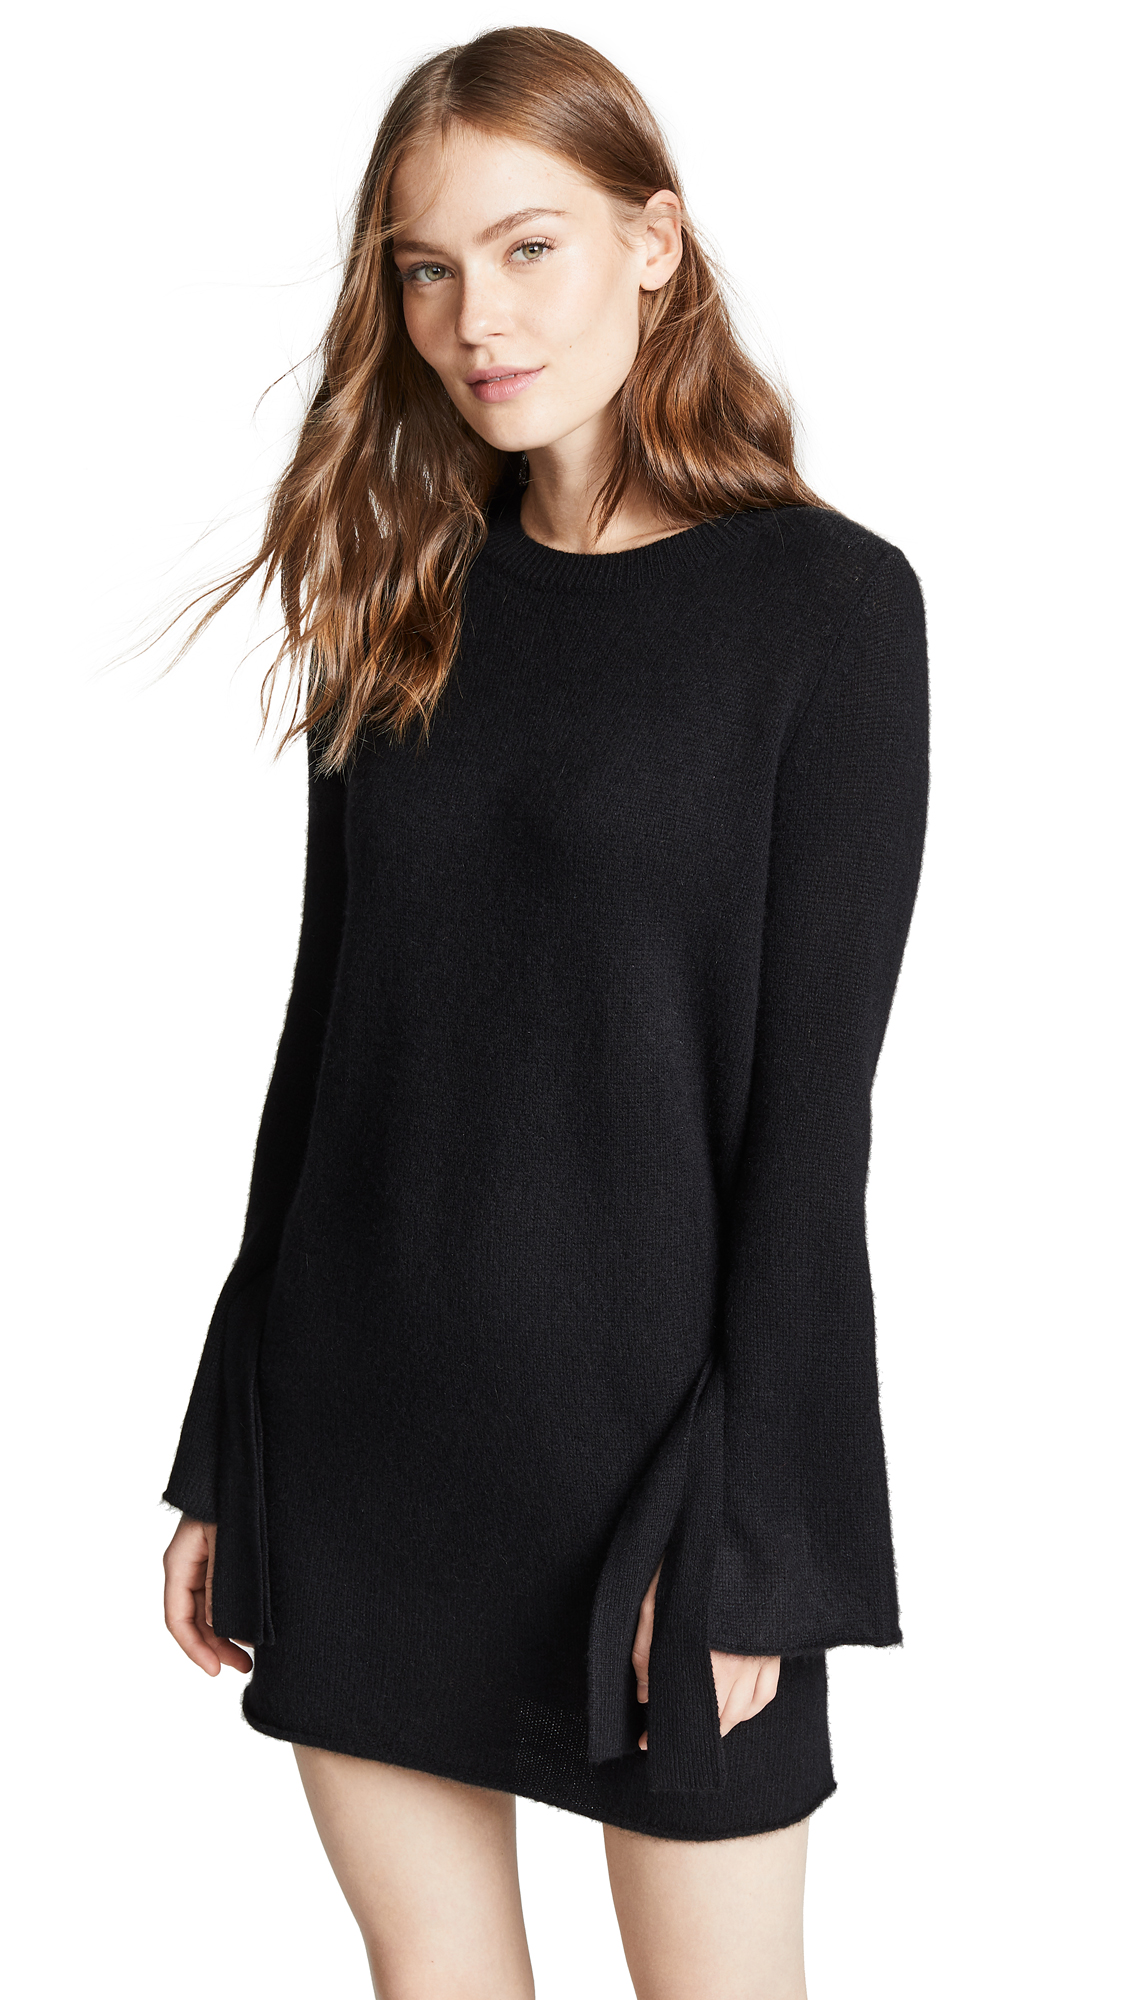 360 SWEATER Rowyn Cashmere Sweater Dress with Tie Sleeve - Black